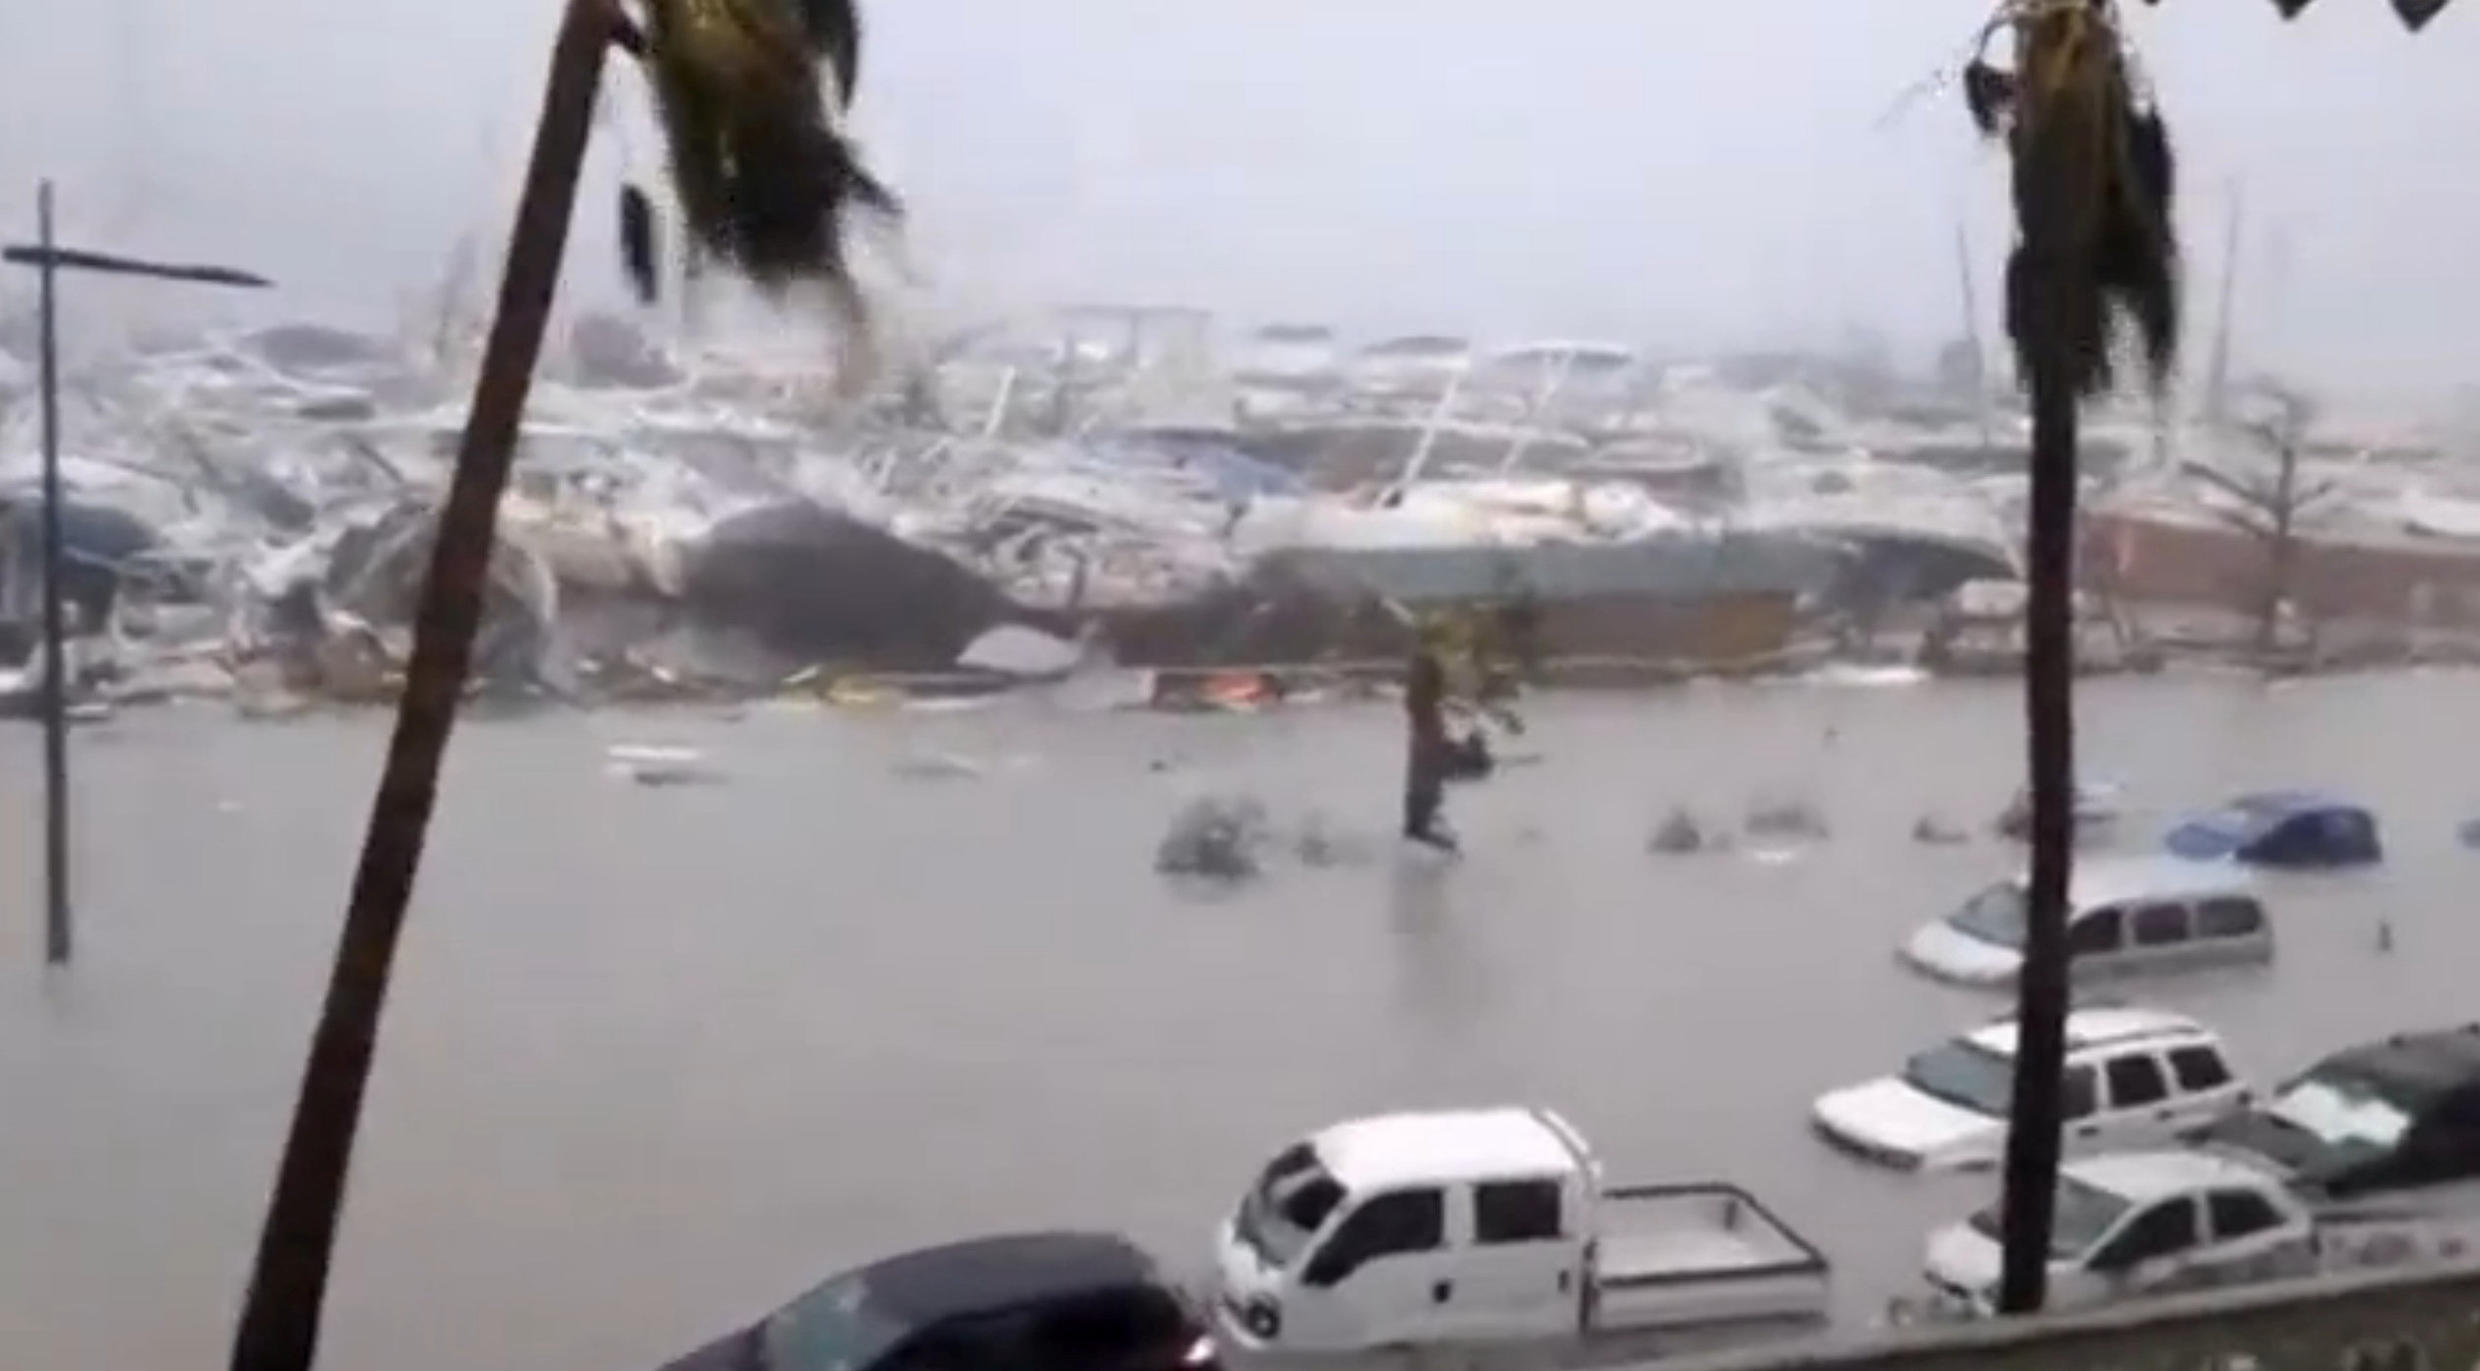 Flooded harbour of St Martin as Hurricane Irma hit the French island territory on 6 September, 2017